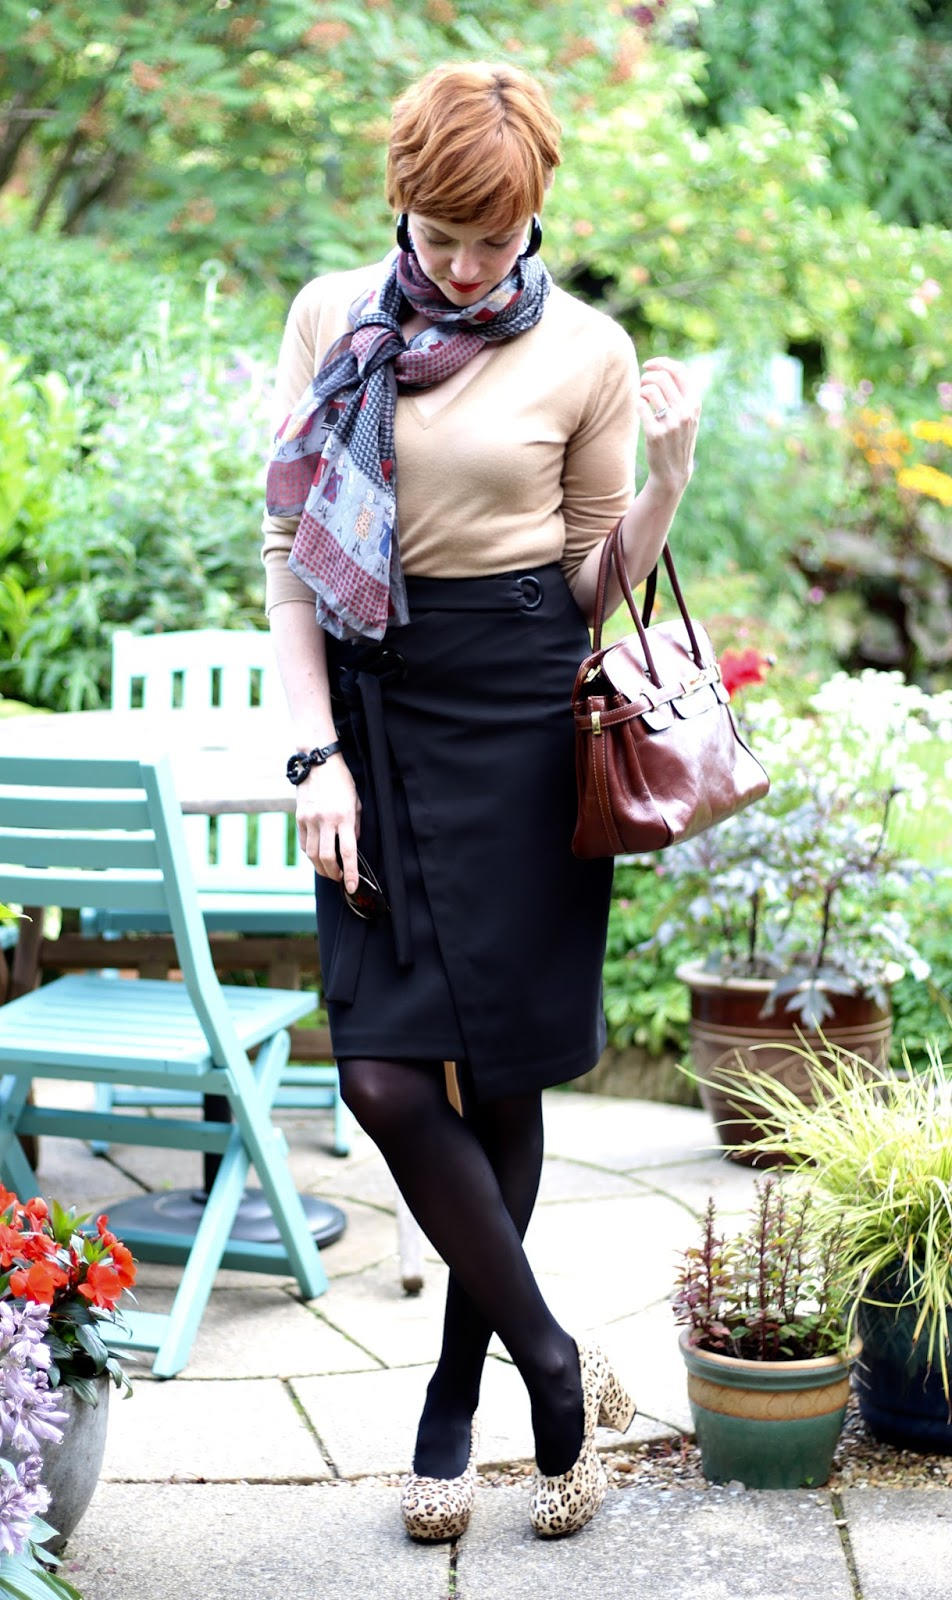 Fake Fabulous | Simple workwear, black Finery pencil skirt, camel cashmere John Smedley jumper, Office leopard shoes.